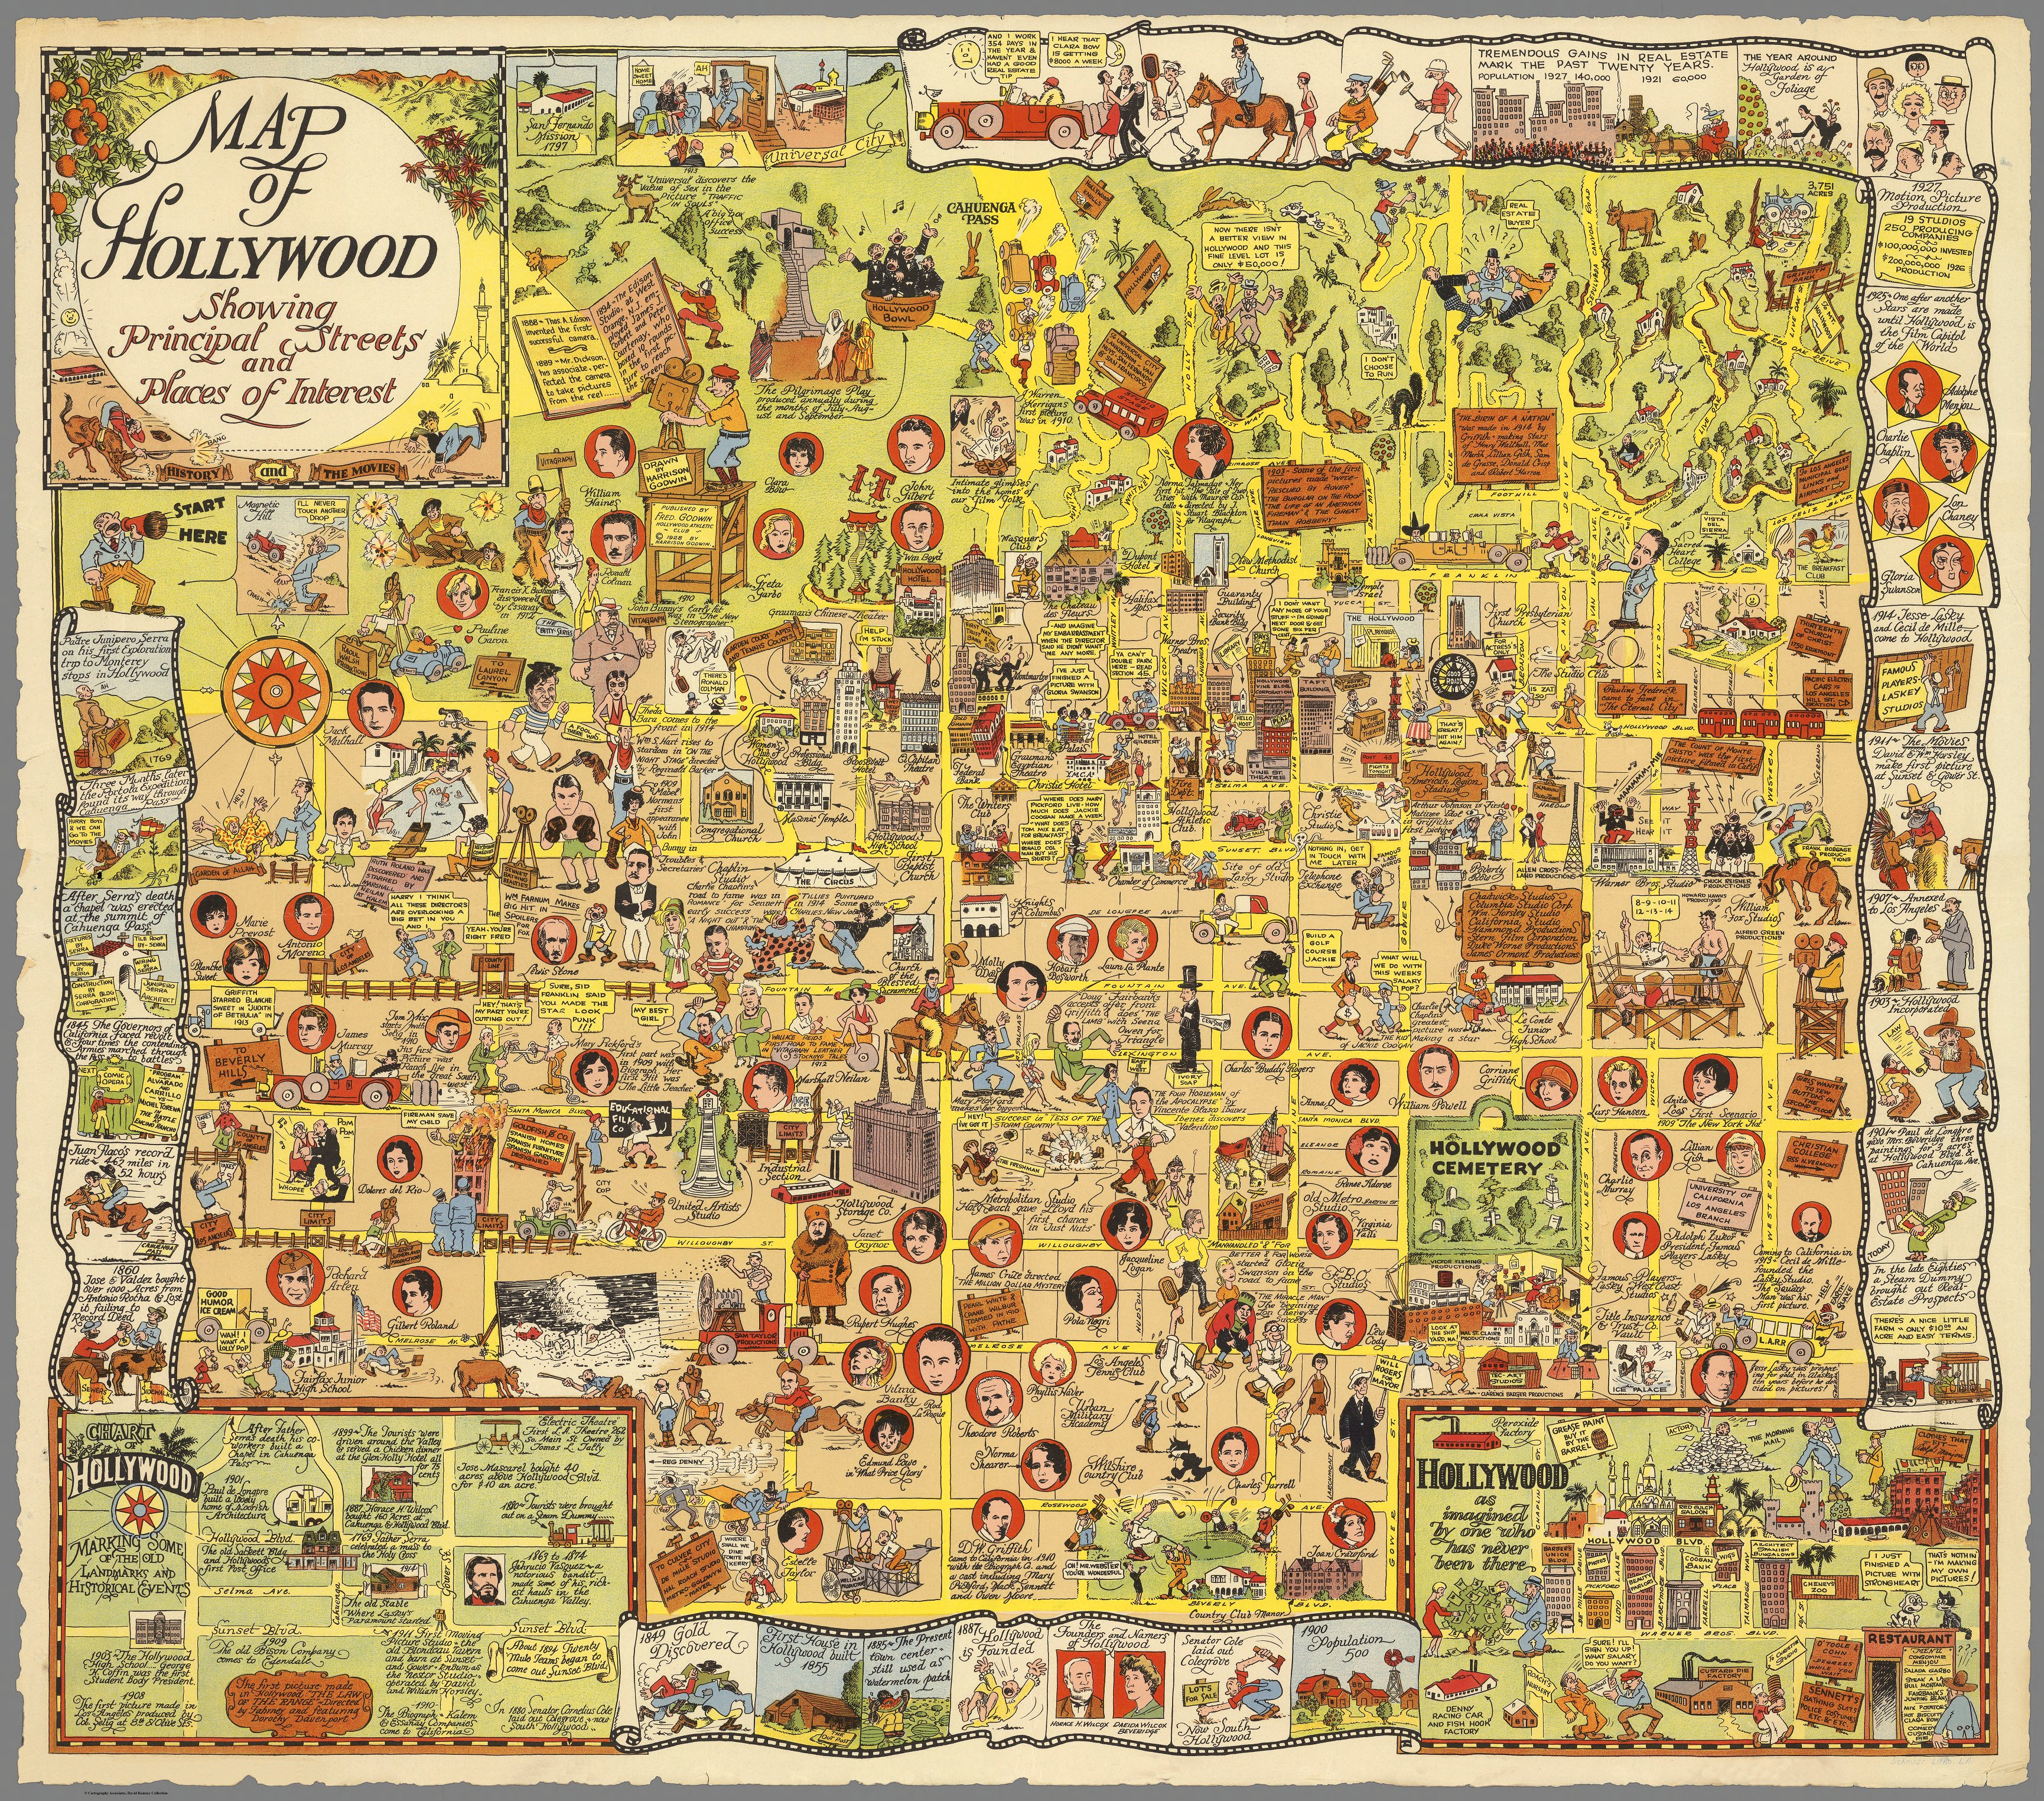 Cool Vintage Map of Hollywood | Earthly Mission